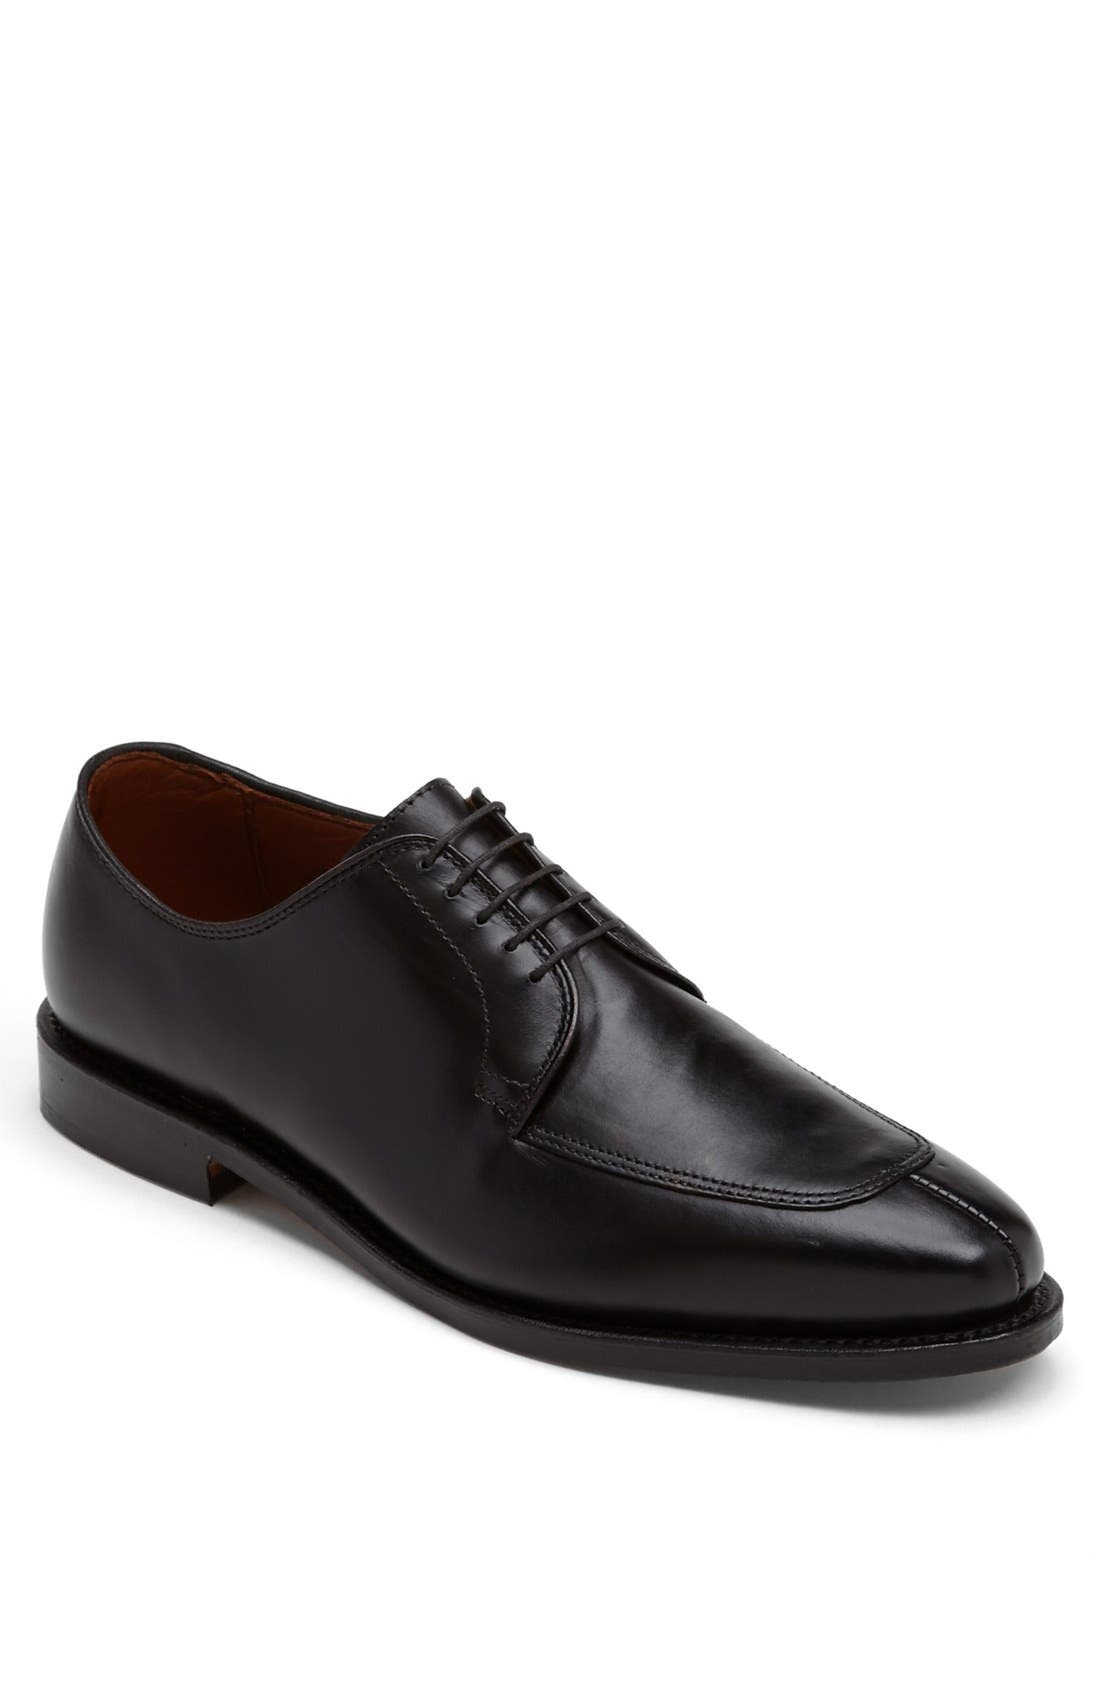 Alternate Image 1 Selected - Allen Edmonds Delray Split Toe Derby (Men)